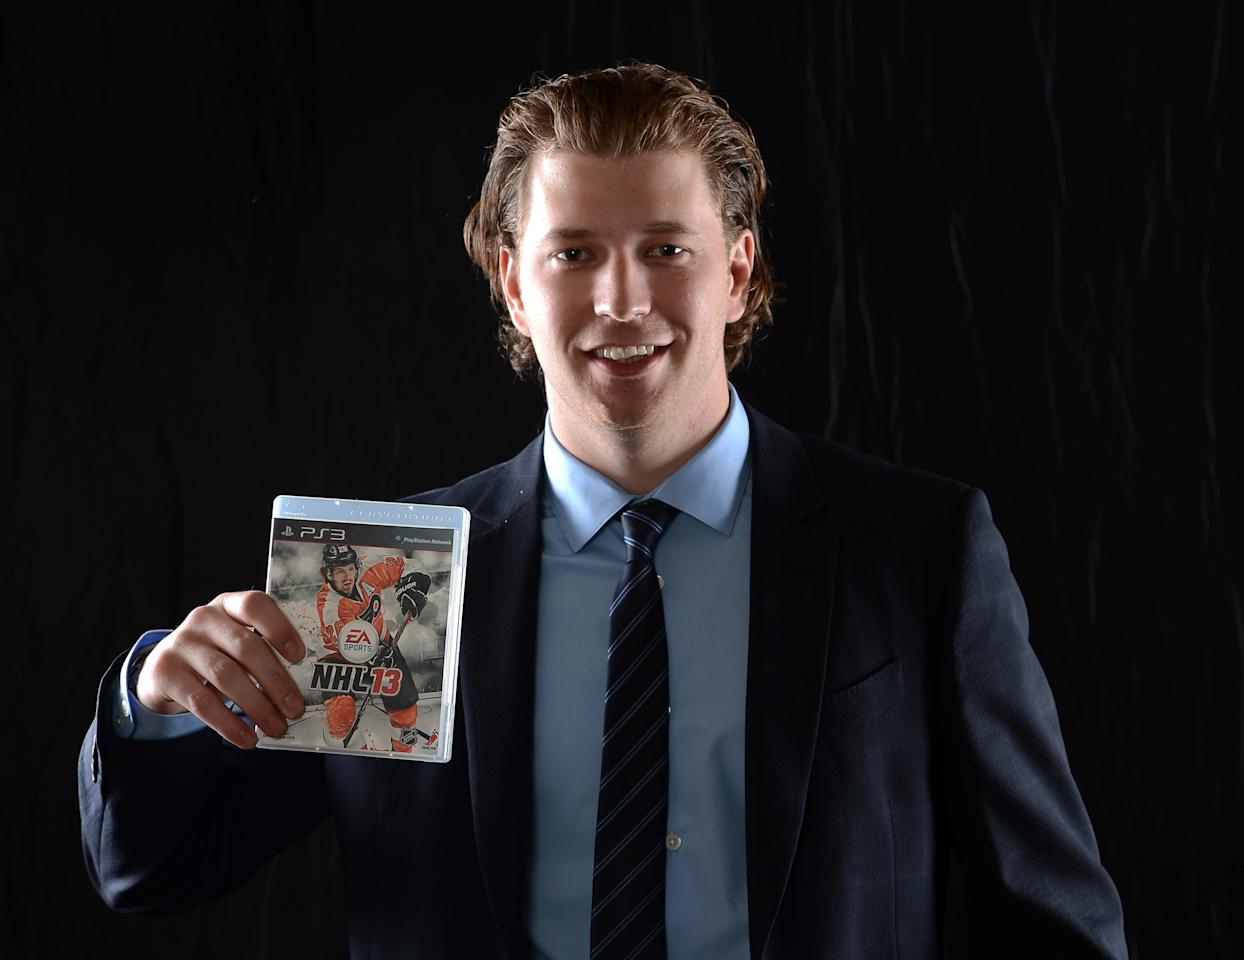 LAS VEGAS, NV - JUNE 20:  Claude Giroux of the Philadelphia Flyers poses after being named the EA SPORTS NHL13 cover athlete during the 2012 NHL Awards at the Encore Theater at the Wynn Las Vegas on June 20, 2012 in Las Vegas, Nevada.  (Photo by Harry How/Getty Images)